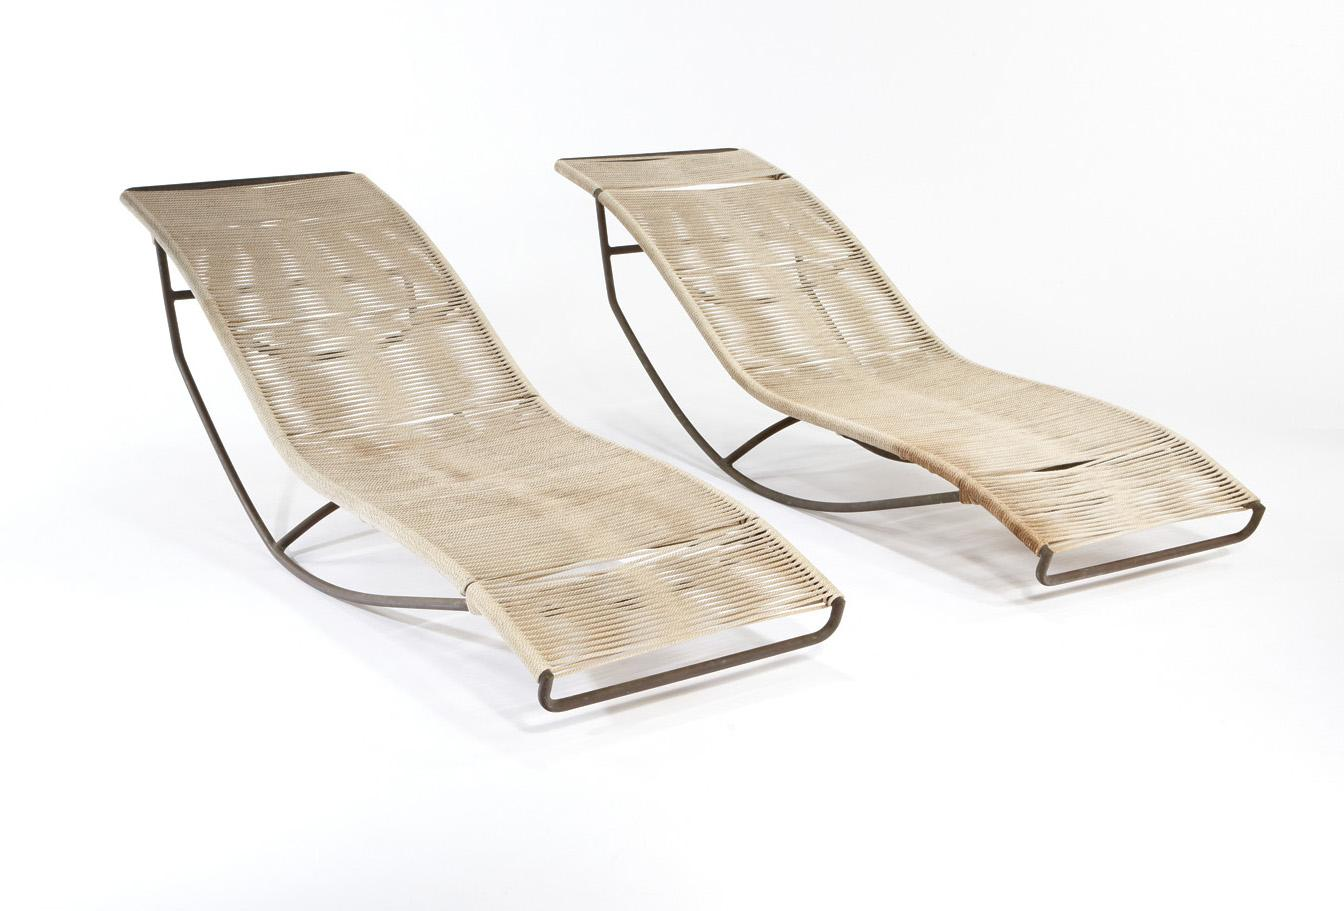 Walter lamb brown jordan pair of chaise lounges wave for Chaise longue wave